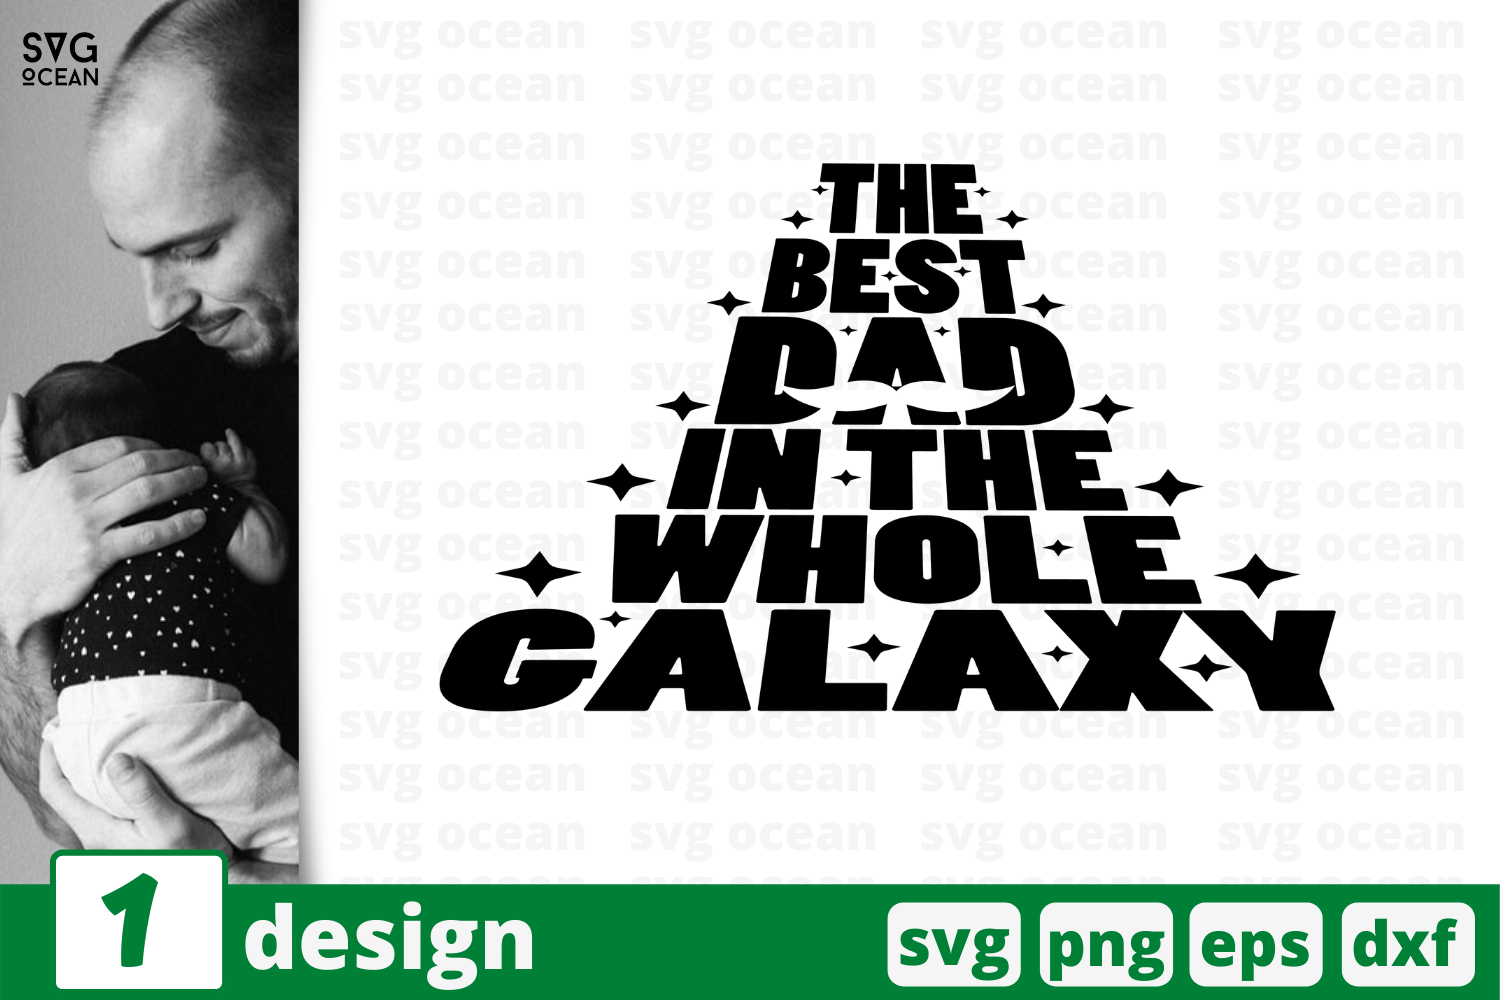 Download Free The Best Dad Graphic By Svgocean Creative Fabrica for Cricut Explore, Silhouette and other cutting machines.